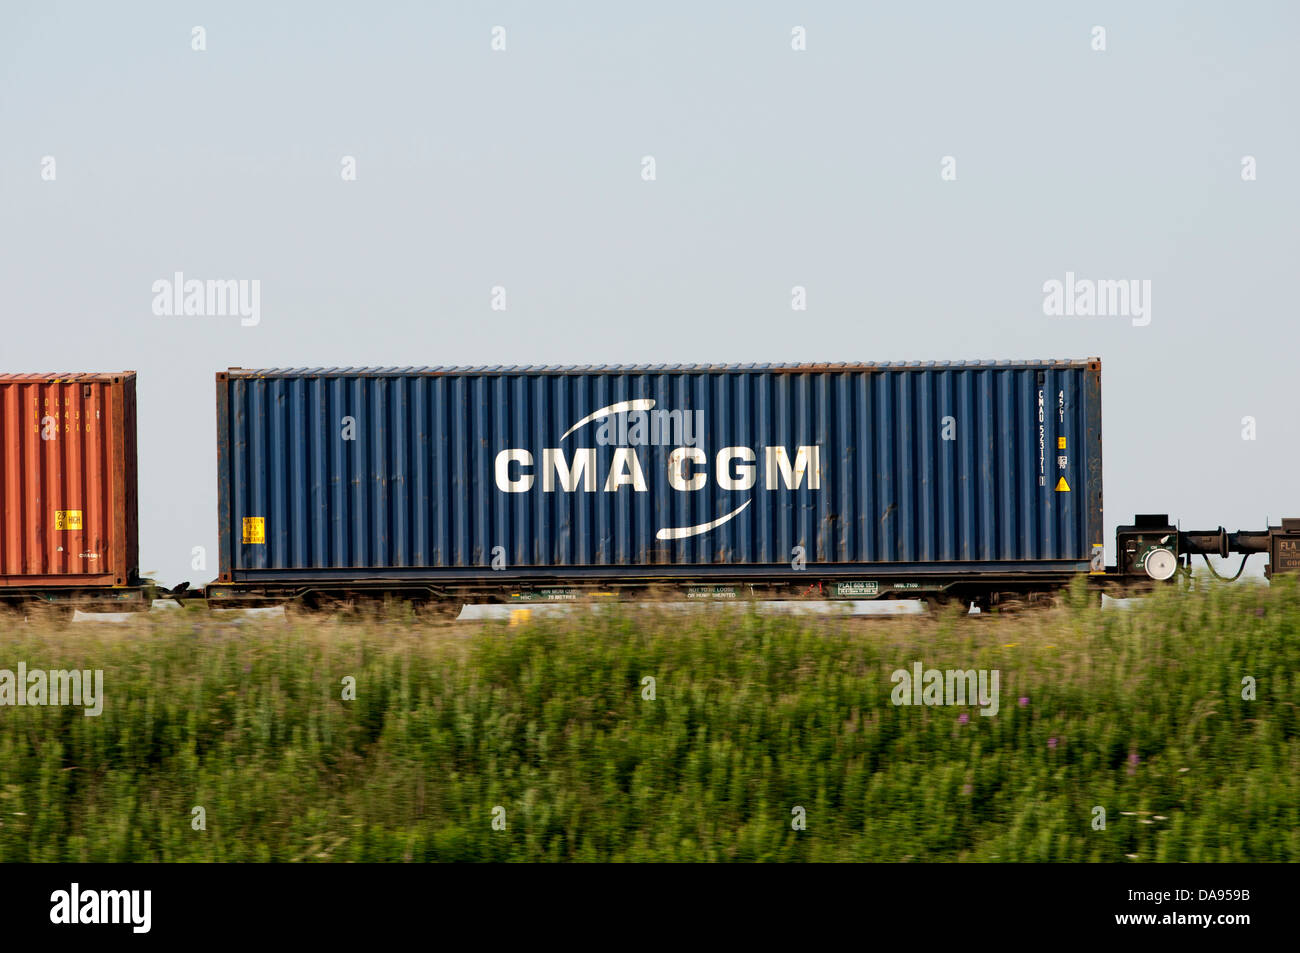 CMA CGM shipping container on a train - Stock Image